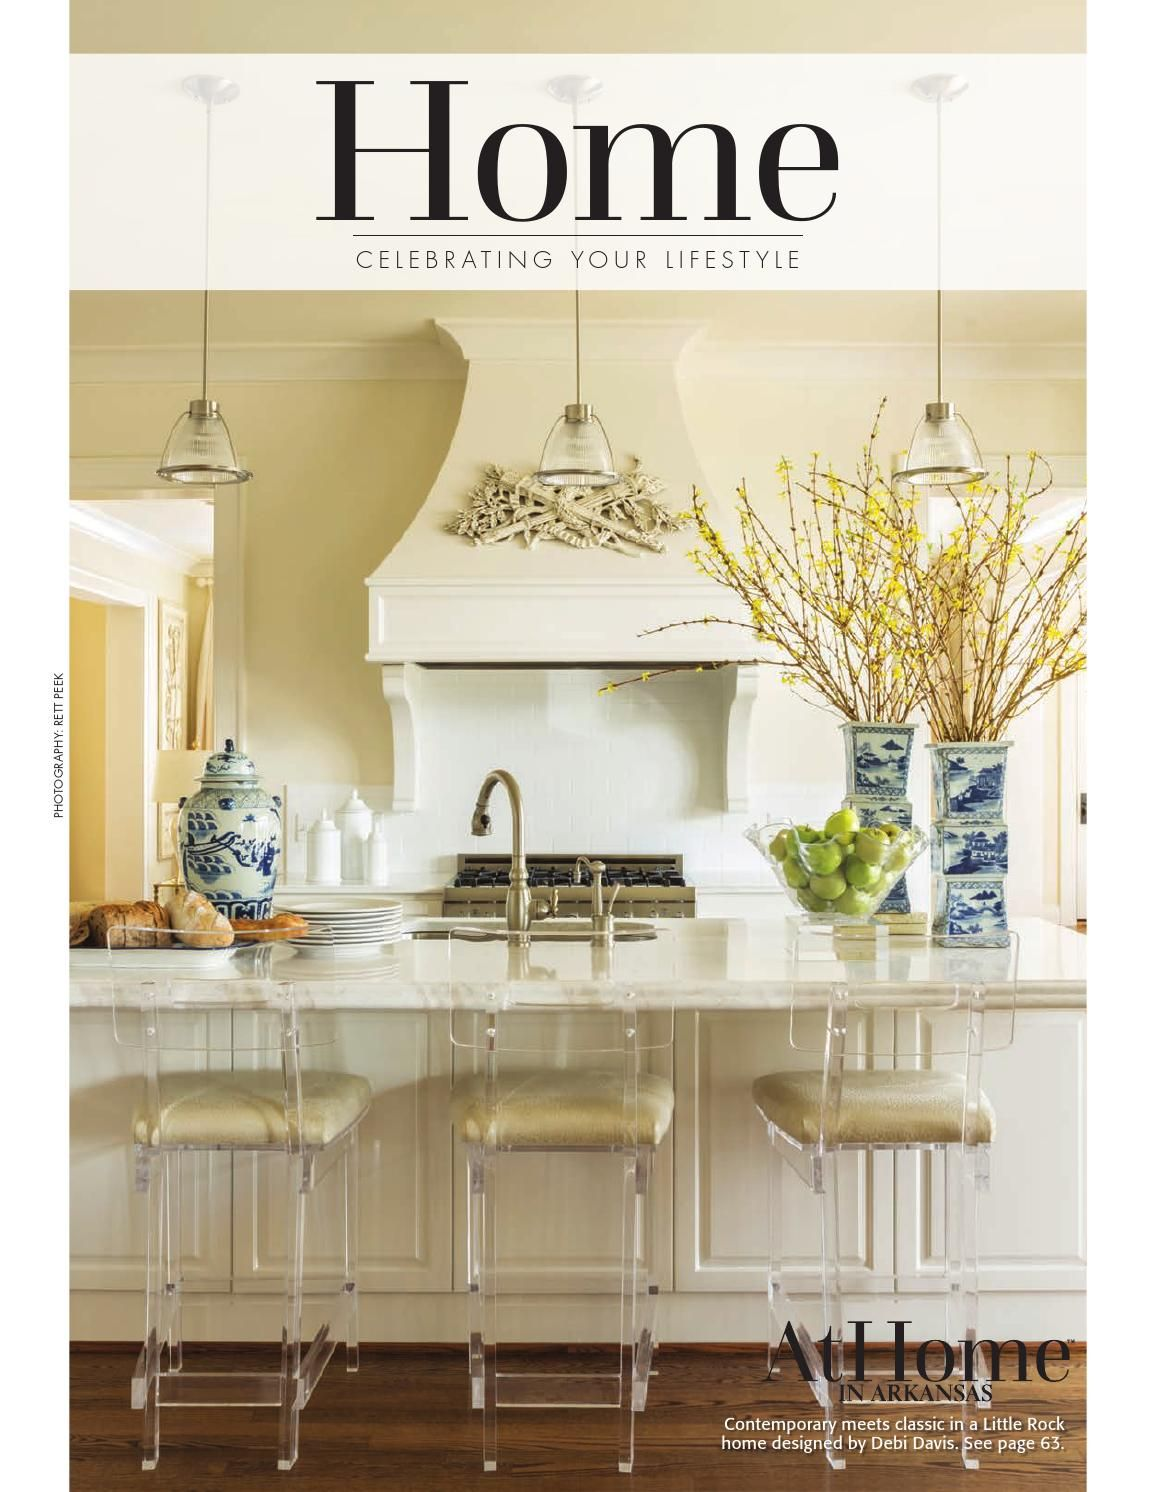 At Home in Arkansas | Traditional kitchen, Kitchens and Interiors